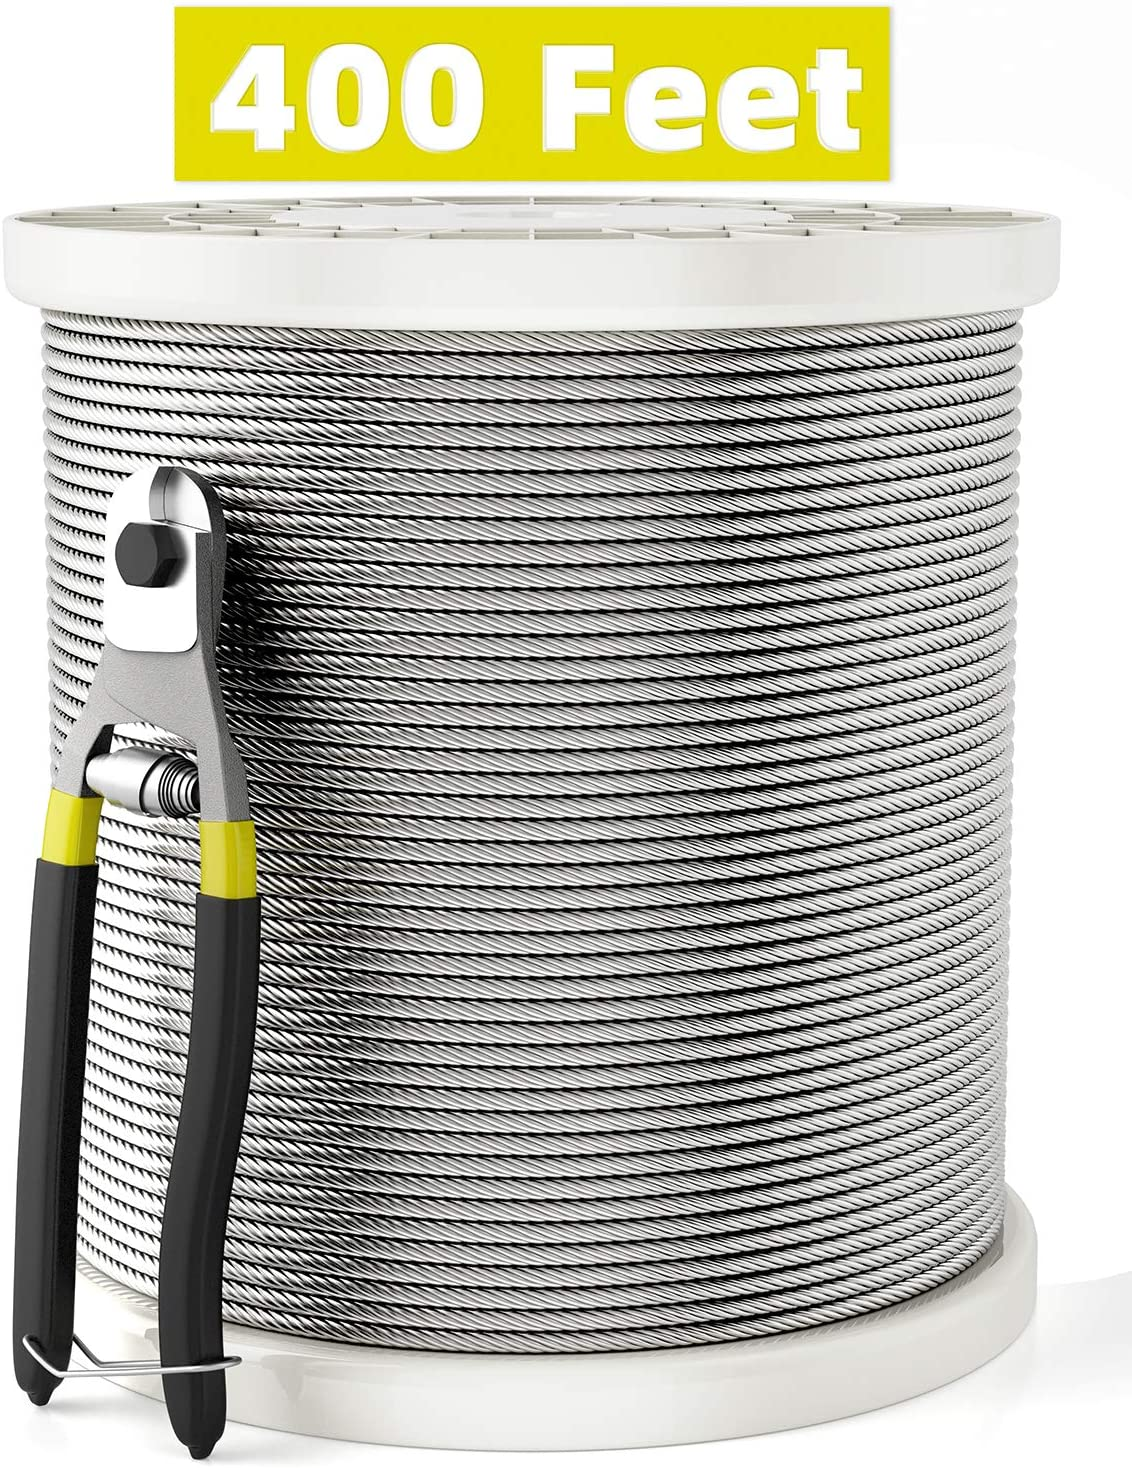 HOSOM 1/8 Stainless Steel Cable with Cutter, T316 Aircraft Cable for Deck Railing, 400FT